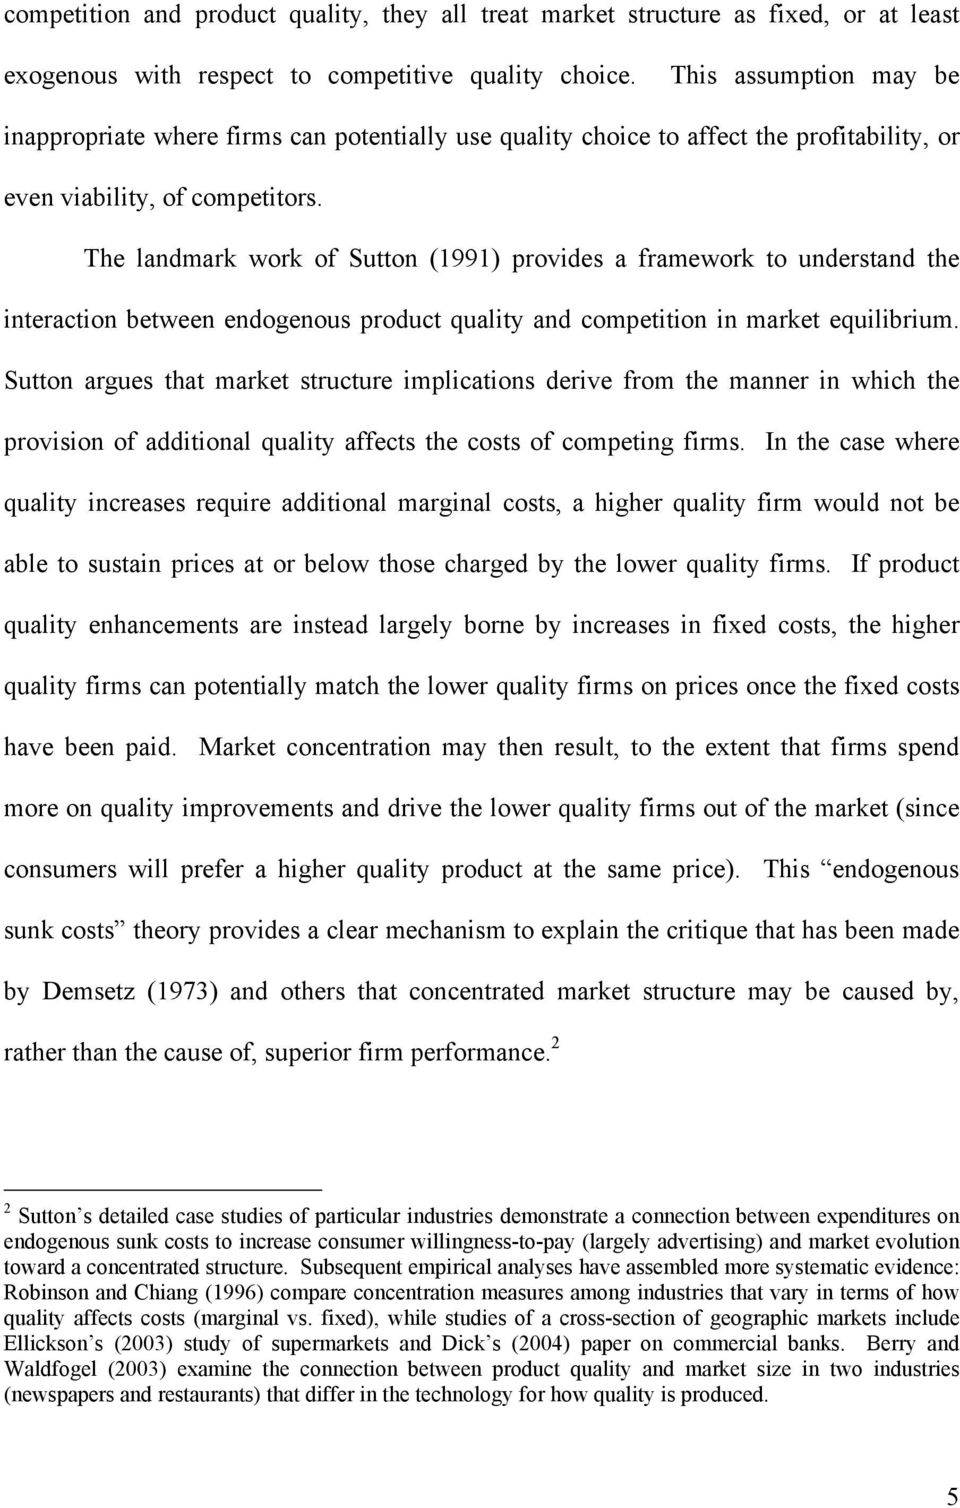 The landmark work of Sutton (1991) provides a framework to understand the interaction between endogenous product quality and competition in market equilibrium.